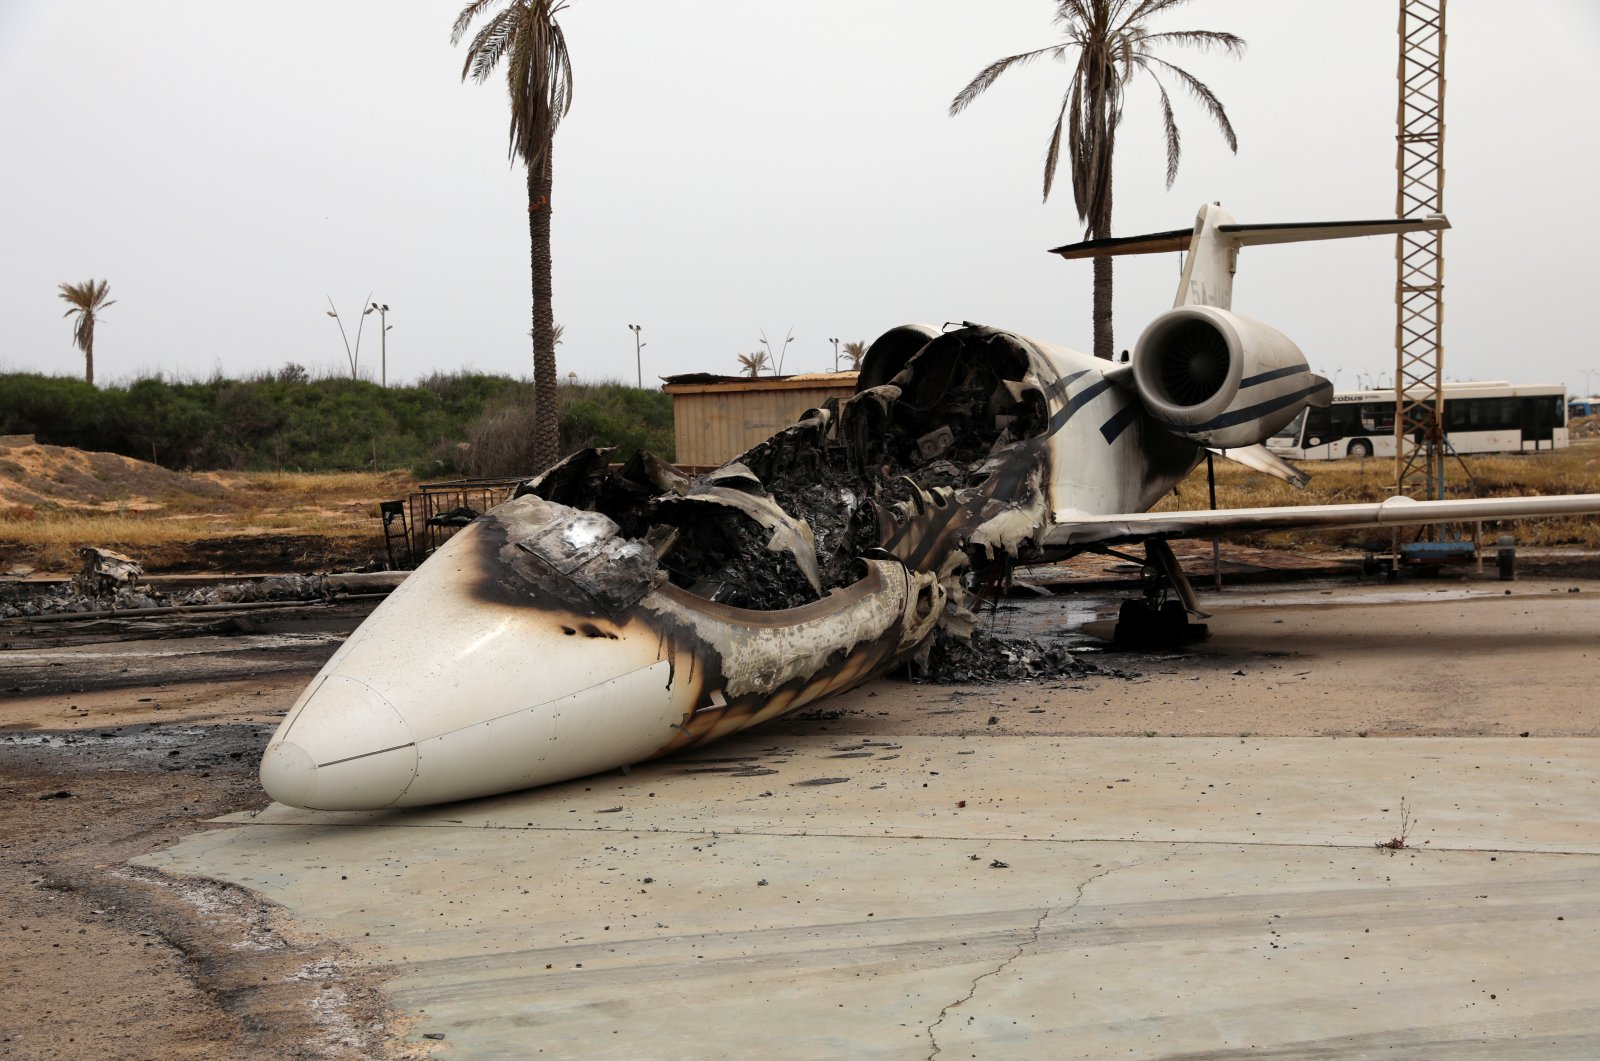 A passenger plane damaged by shelling is seen at Tripoli's Mitiga airport in Tripoli, Libya, May 10, 2020. (Reuters Photo)